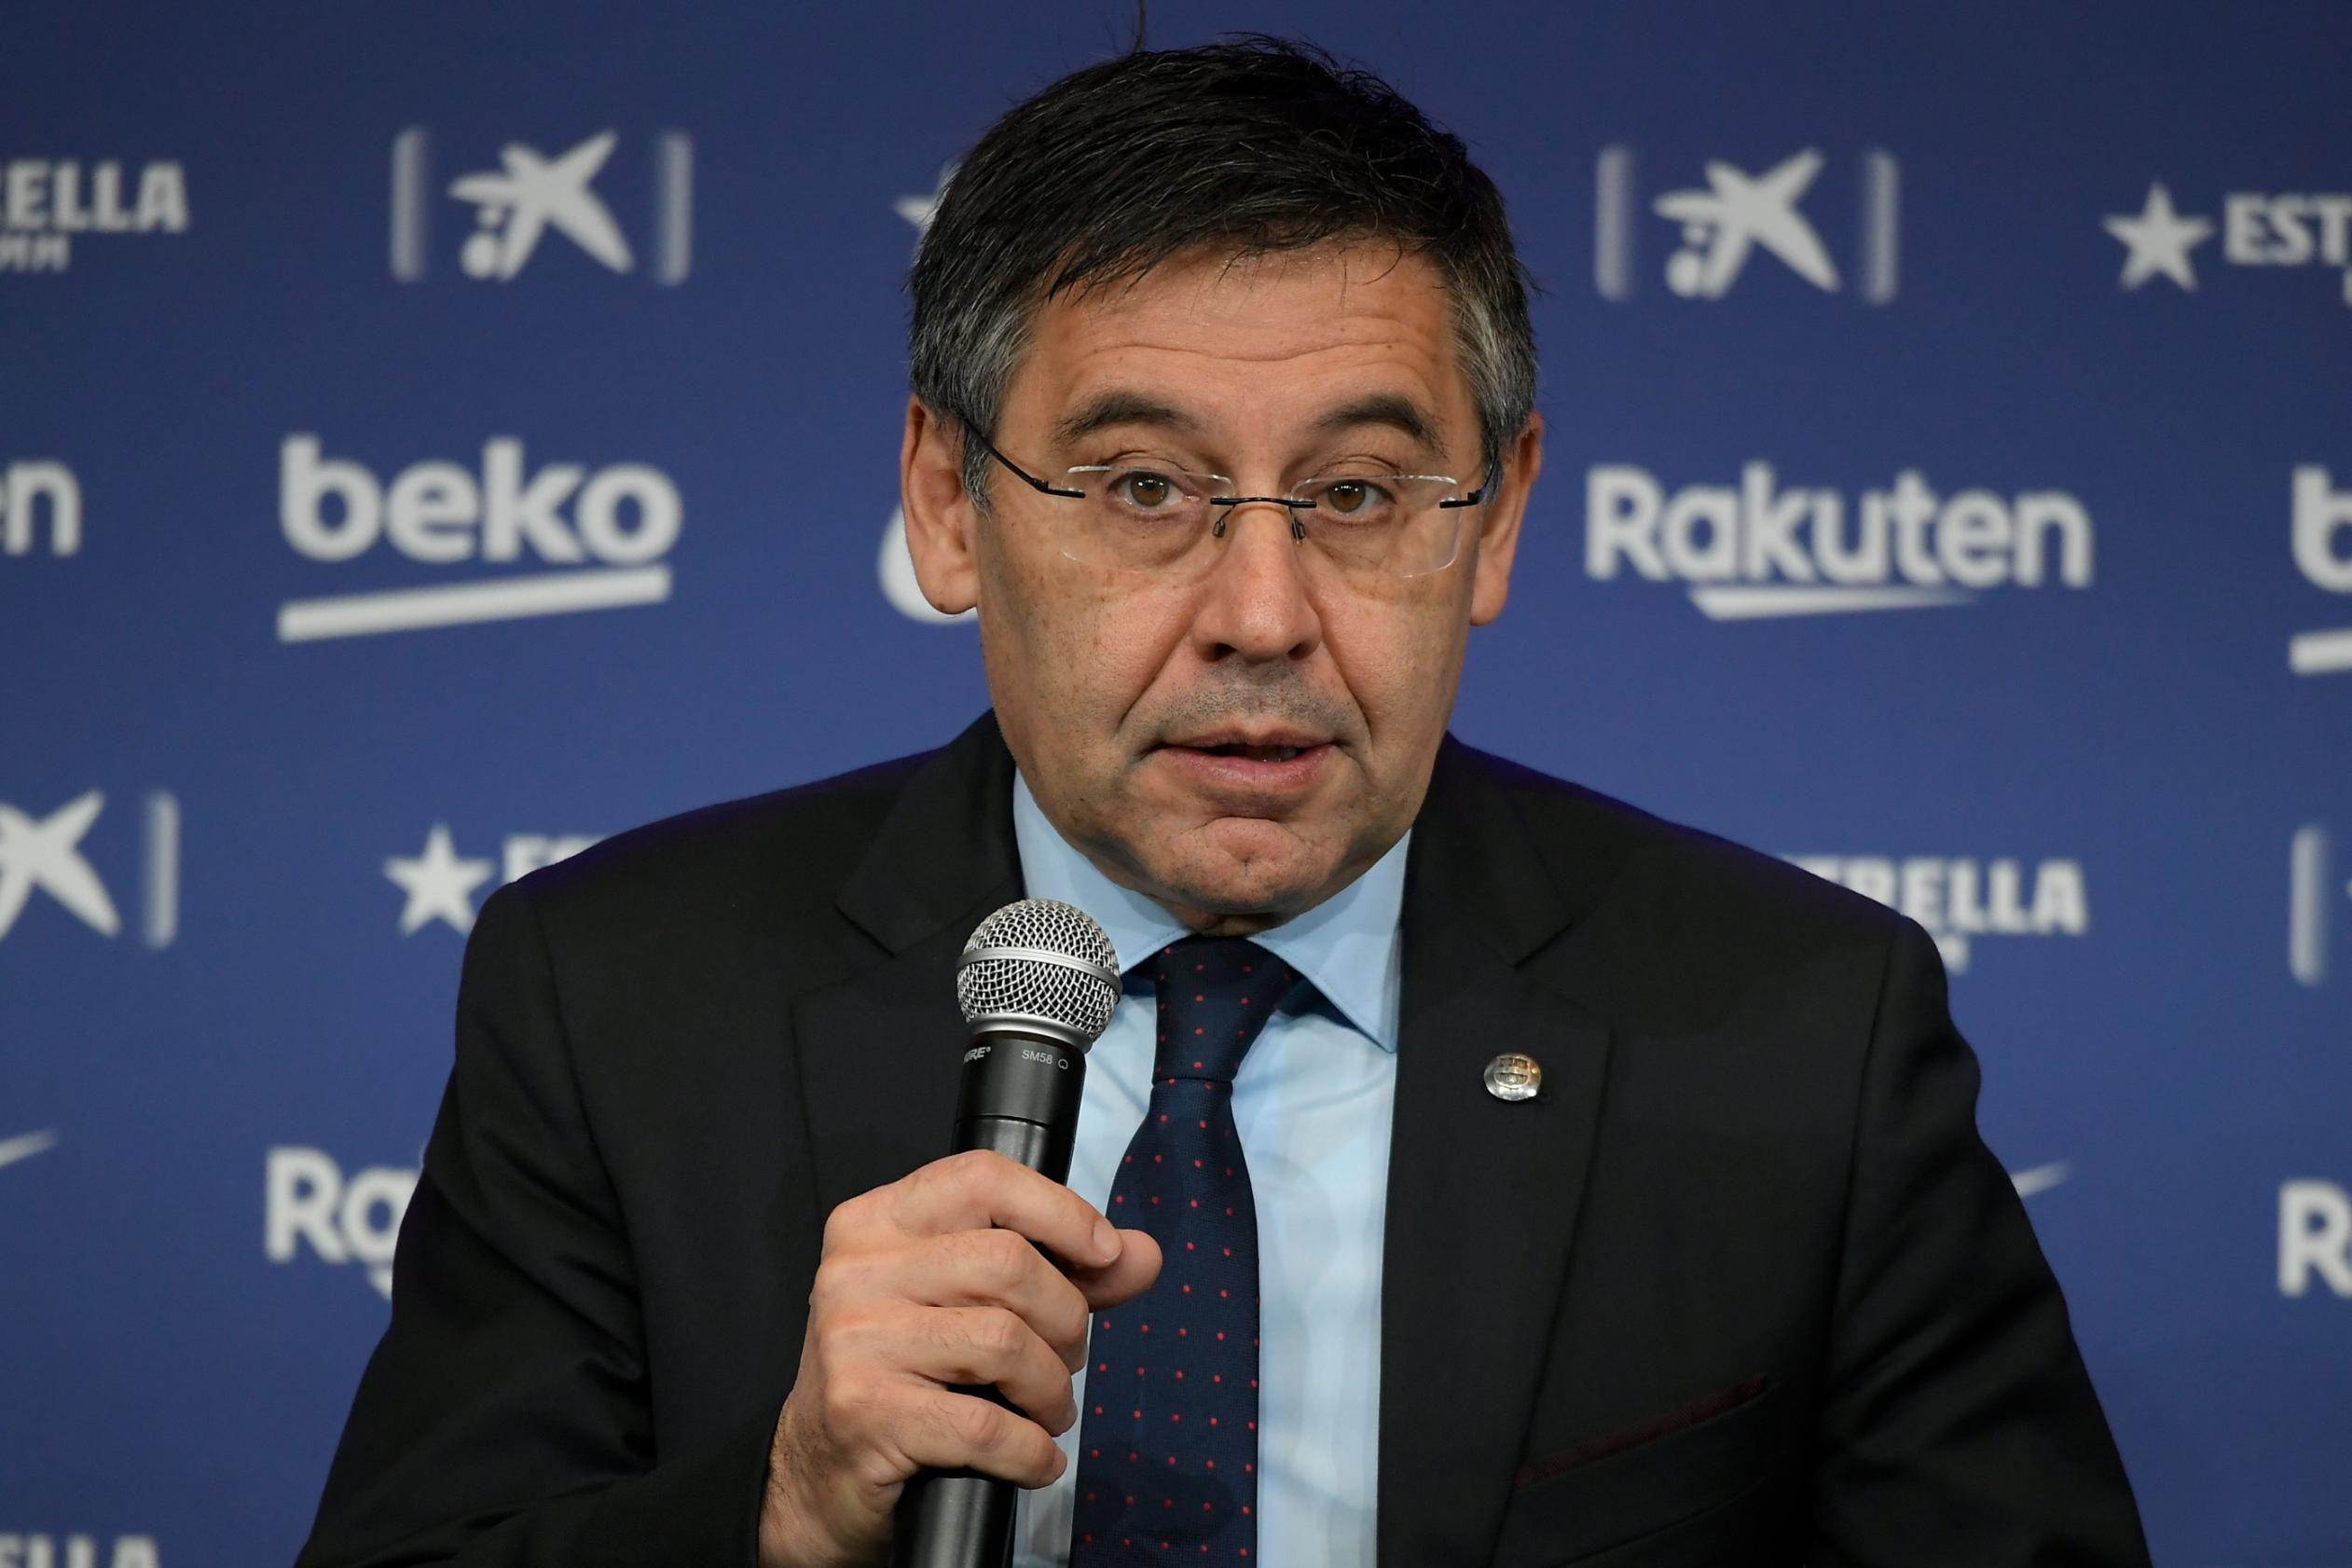 Barcelona in turmoil as president Josep Maria Bartomeu resigns along with entire board of directors